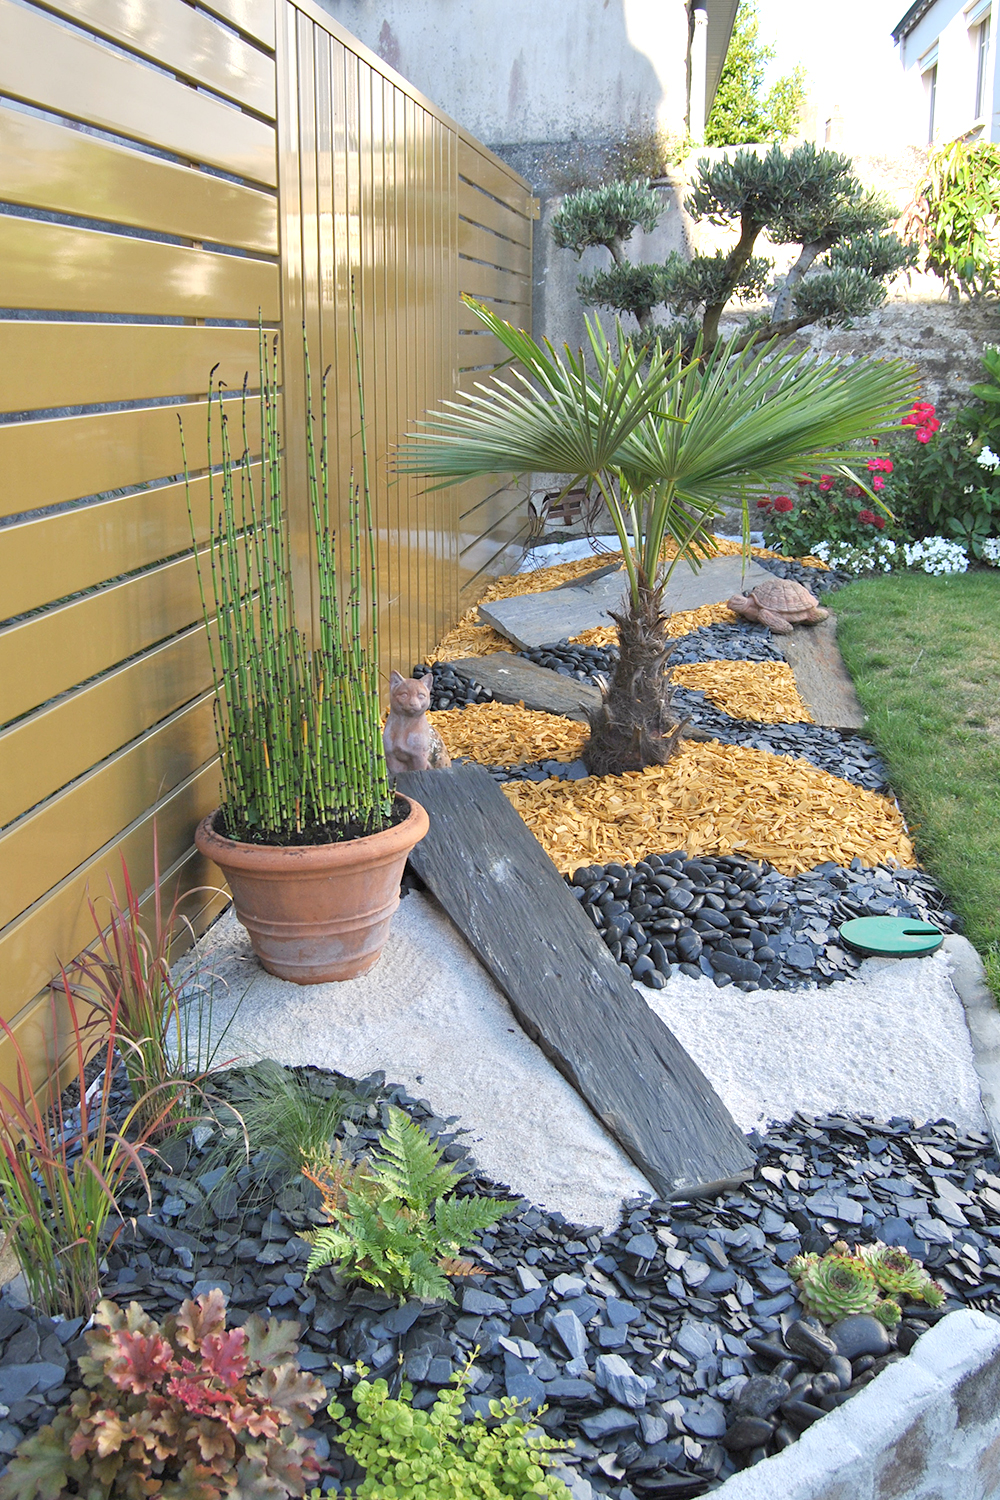 Am nagement ext rieur et d coration de terrasse for Les plantes exterieur